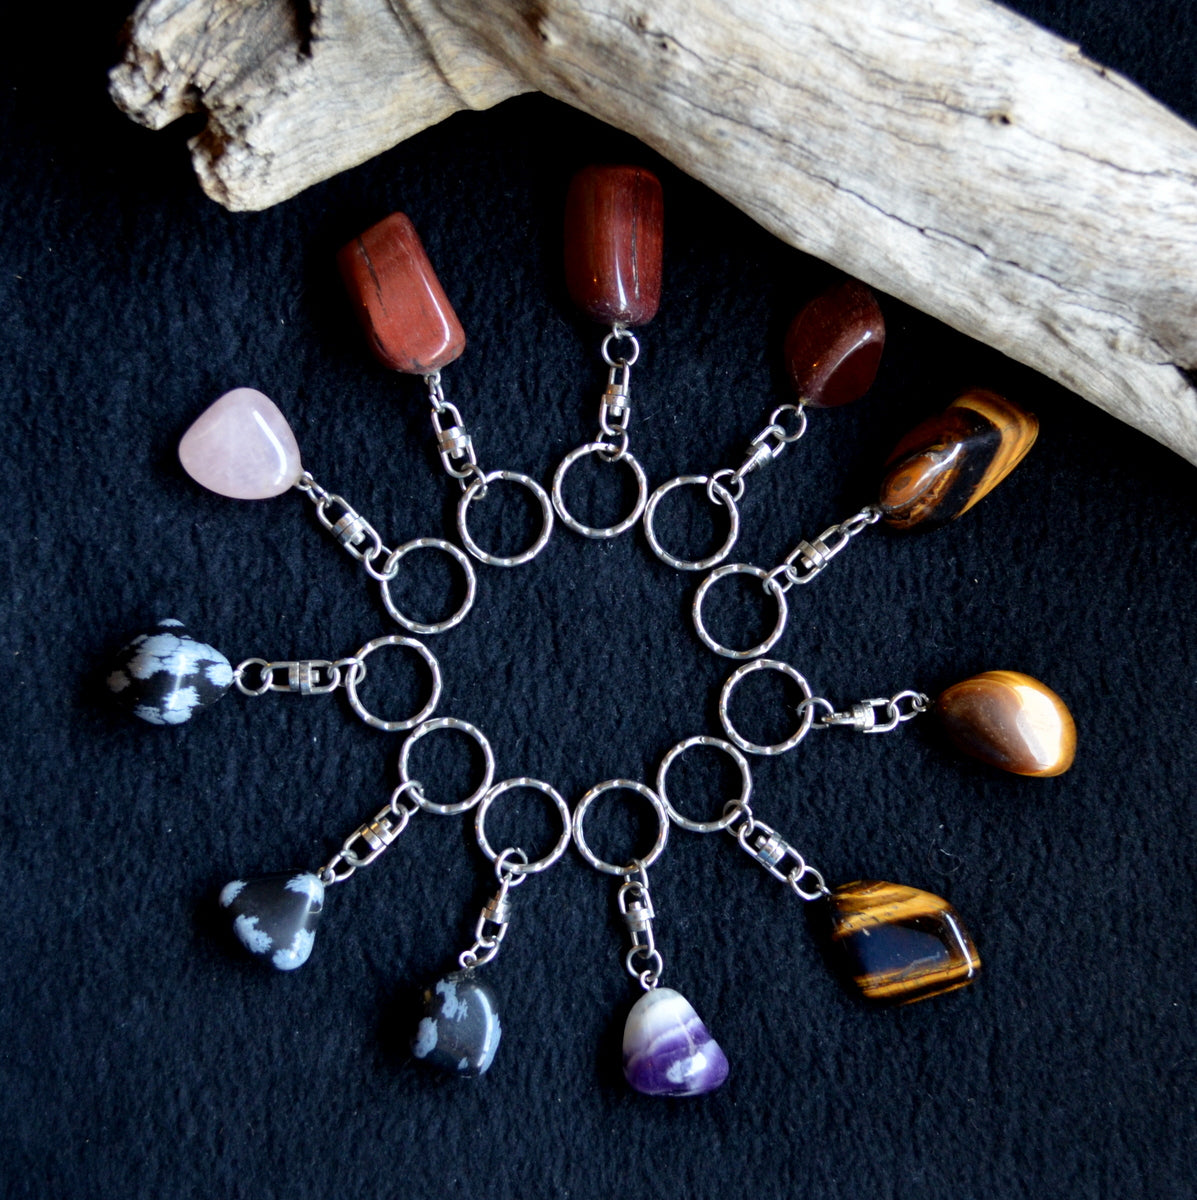 Gorgeous Gemstone Keyrings Assorted Each - Tiger Eye Rose Quartz Chevron Amethyst Snowflake Obsidian - New at Illiom Crystals - We have Afterpay!